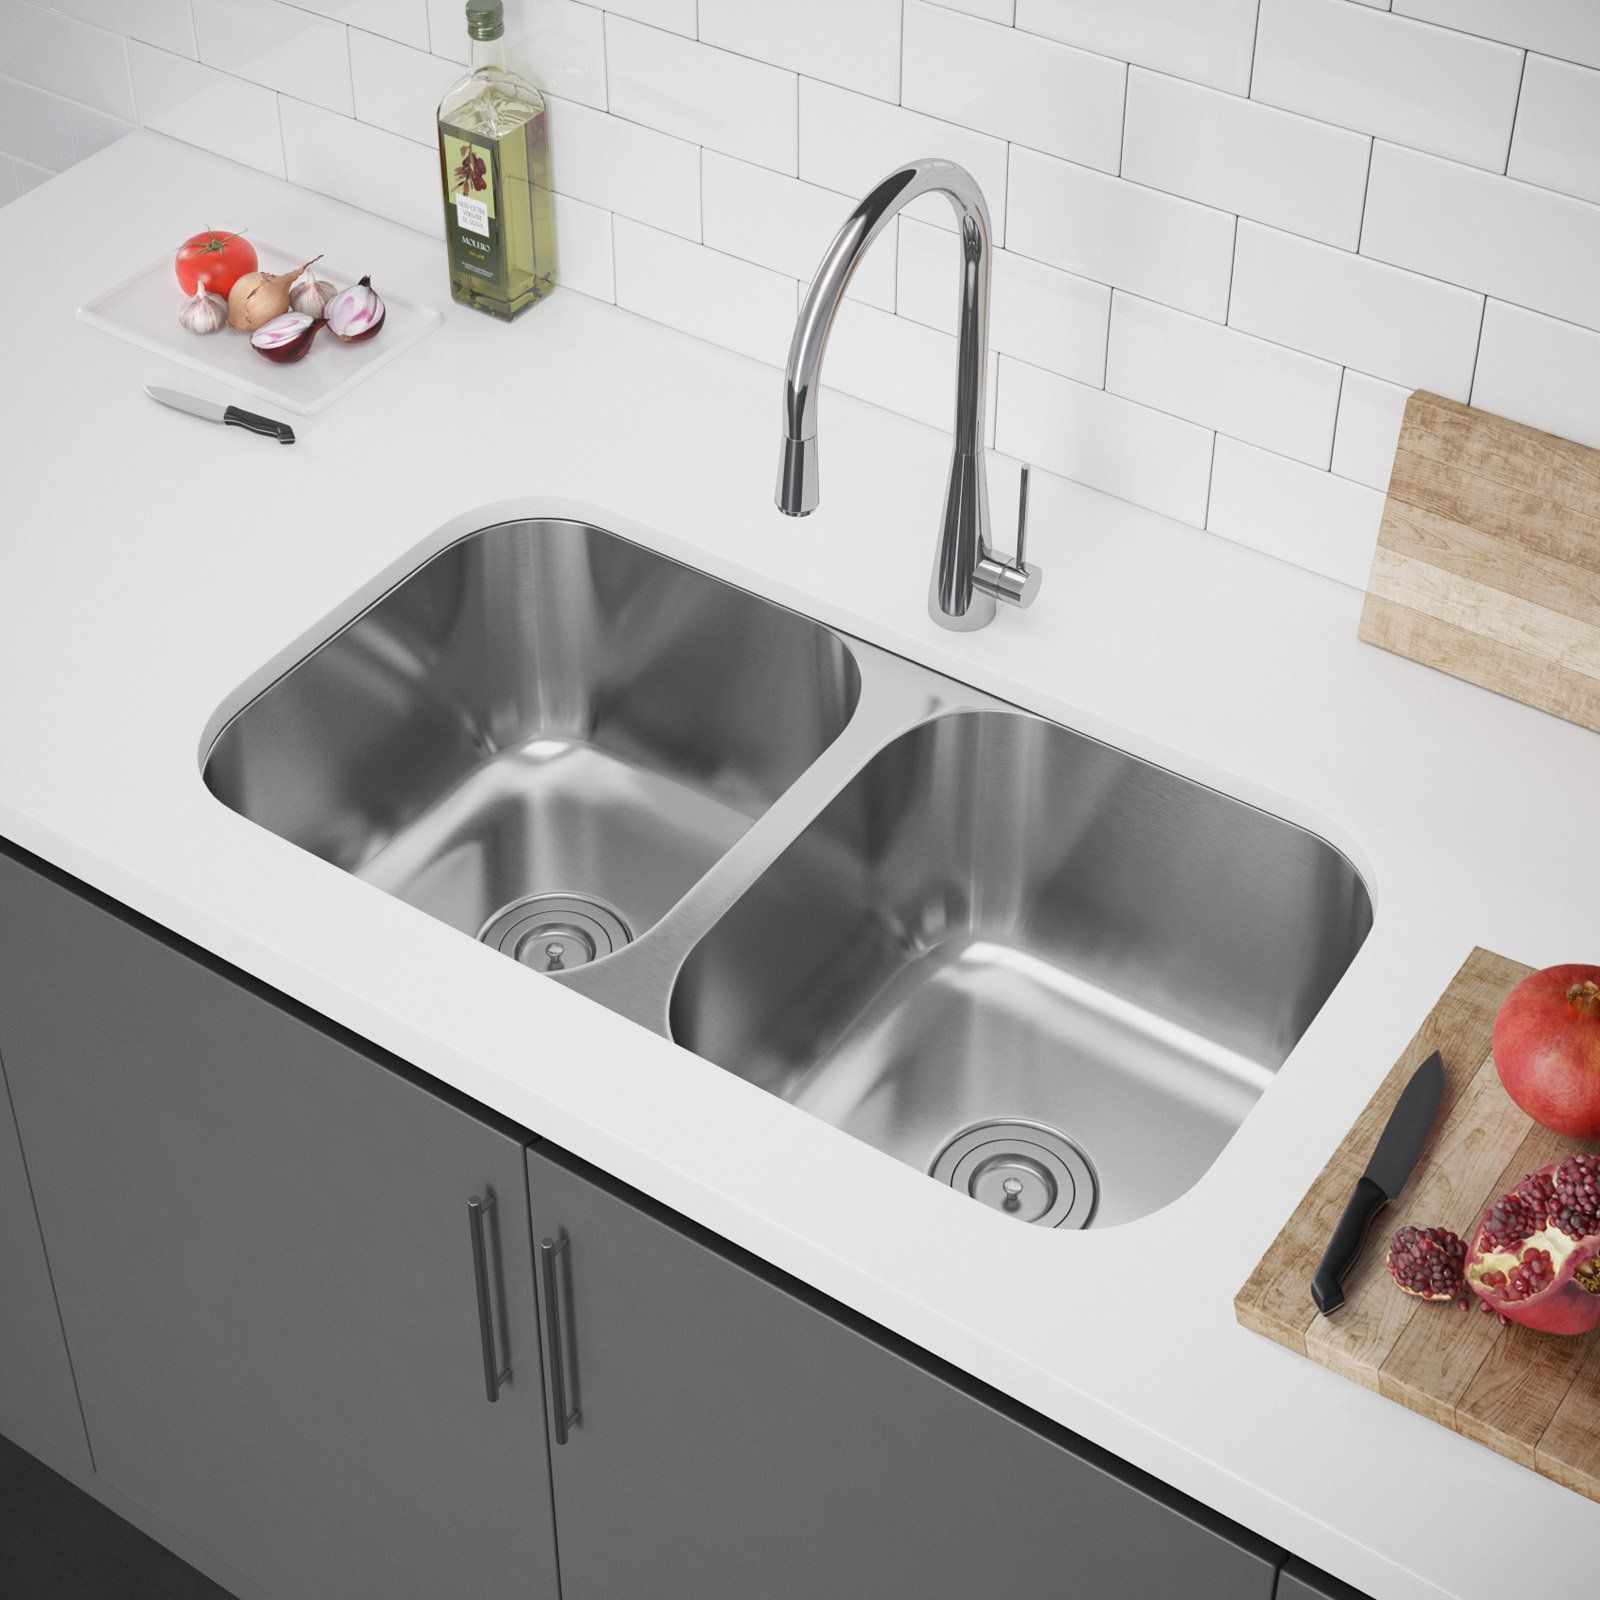 Exclusive Heritage Double Bowl Undermount Ksd 3221 D5 Kitchen Sink